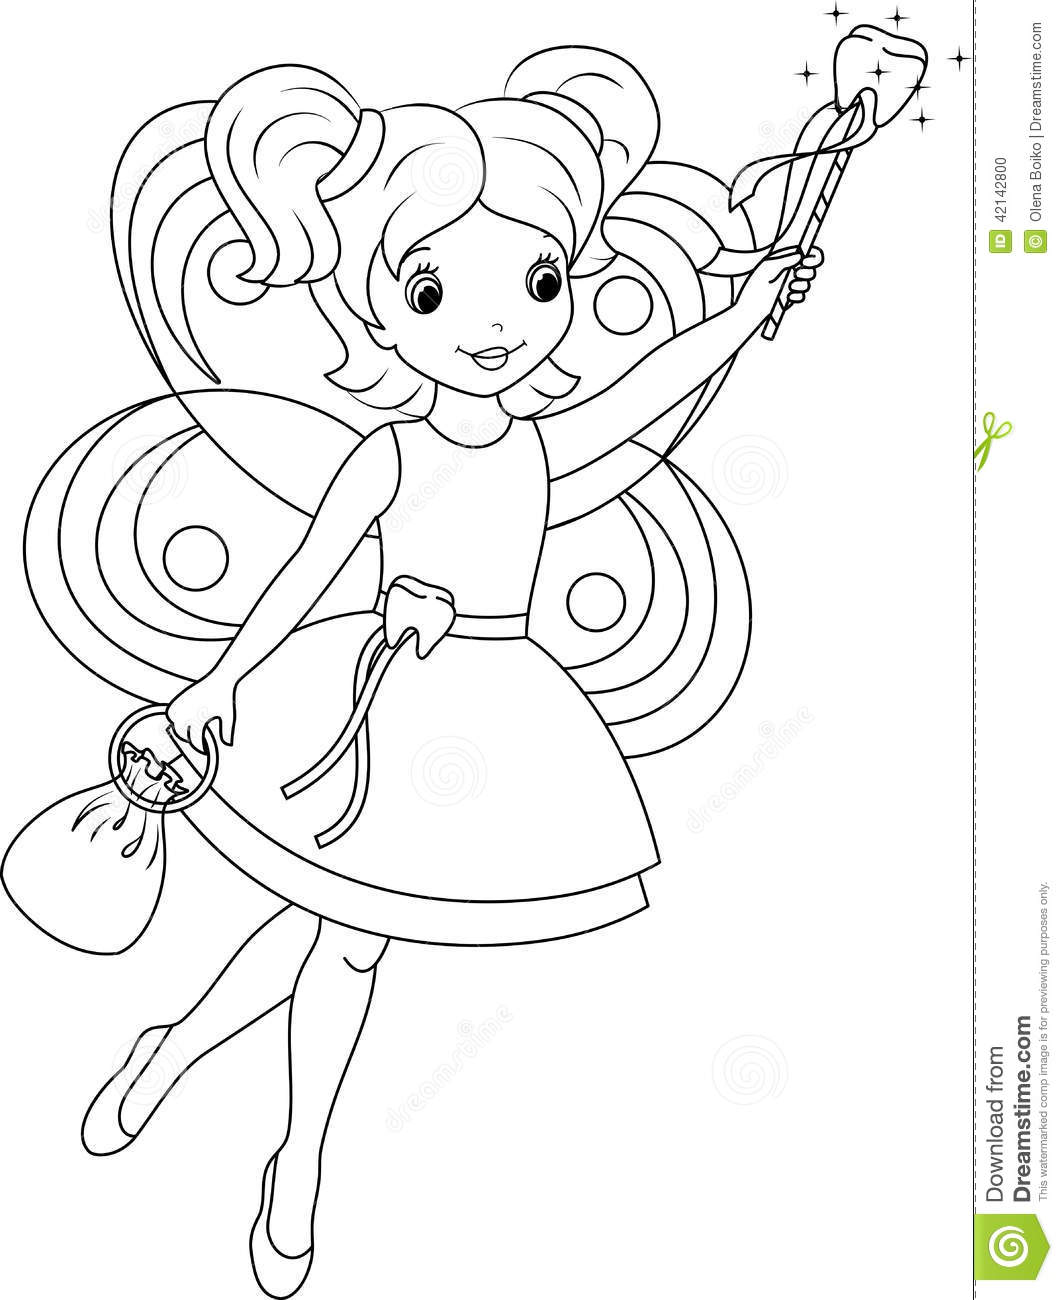 Tooth fairy coloring page stock vector. Illustration of page - 42142800